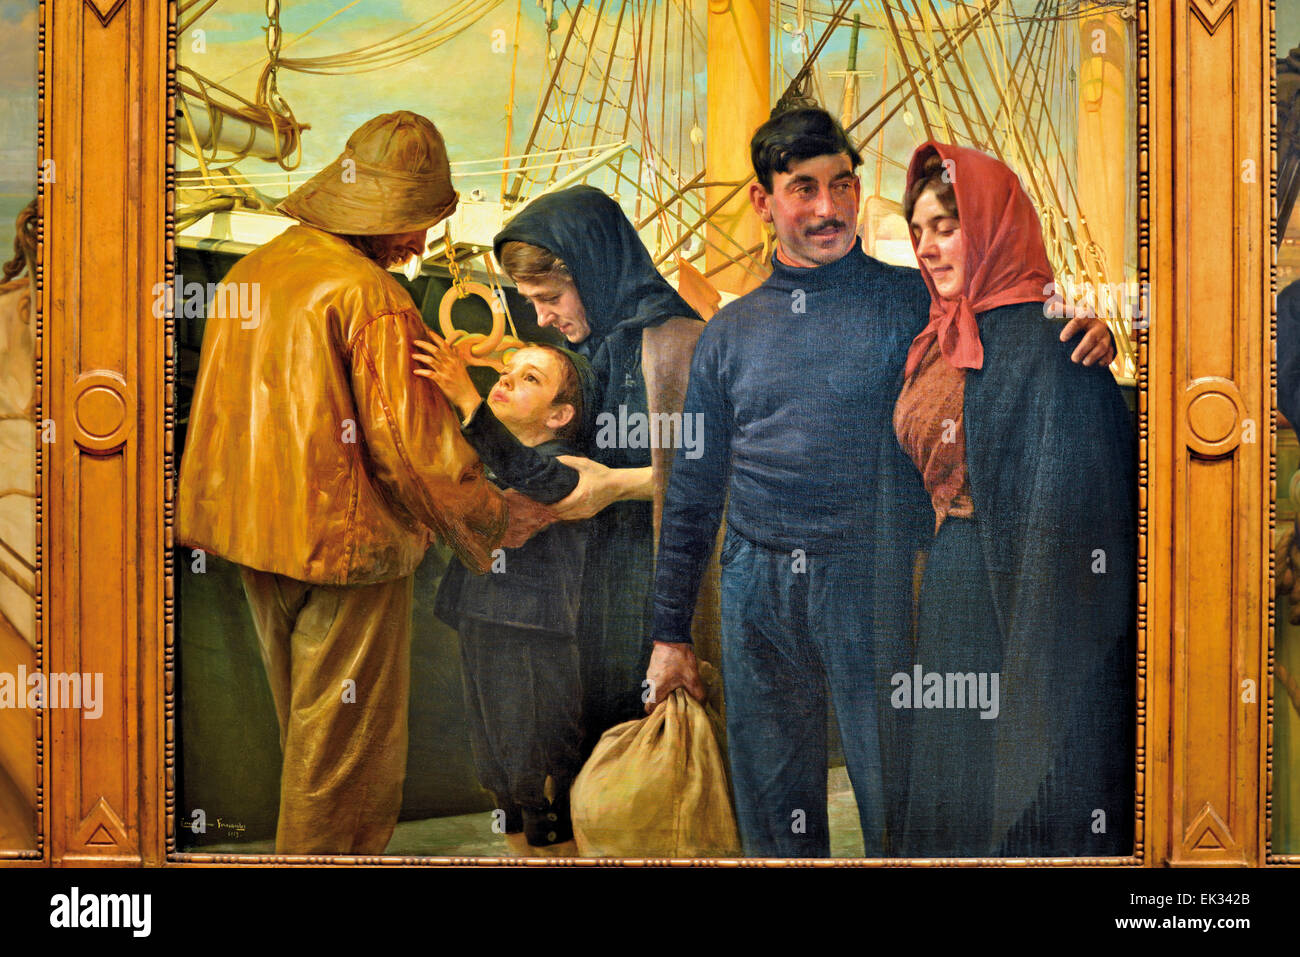 """Portugal, Lisbon: Historic painting """"O Marinheiro"""" with sailors saying good-bye to families in the Museum of Fado Stock Photo"""